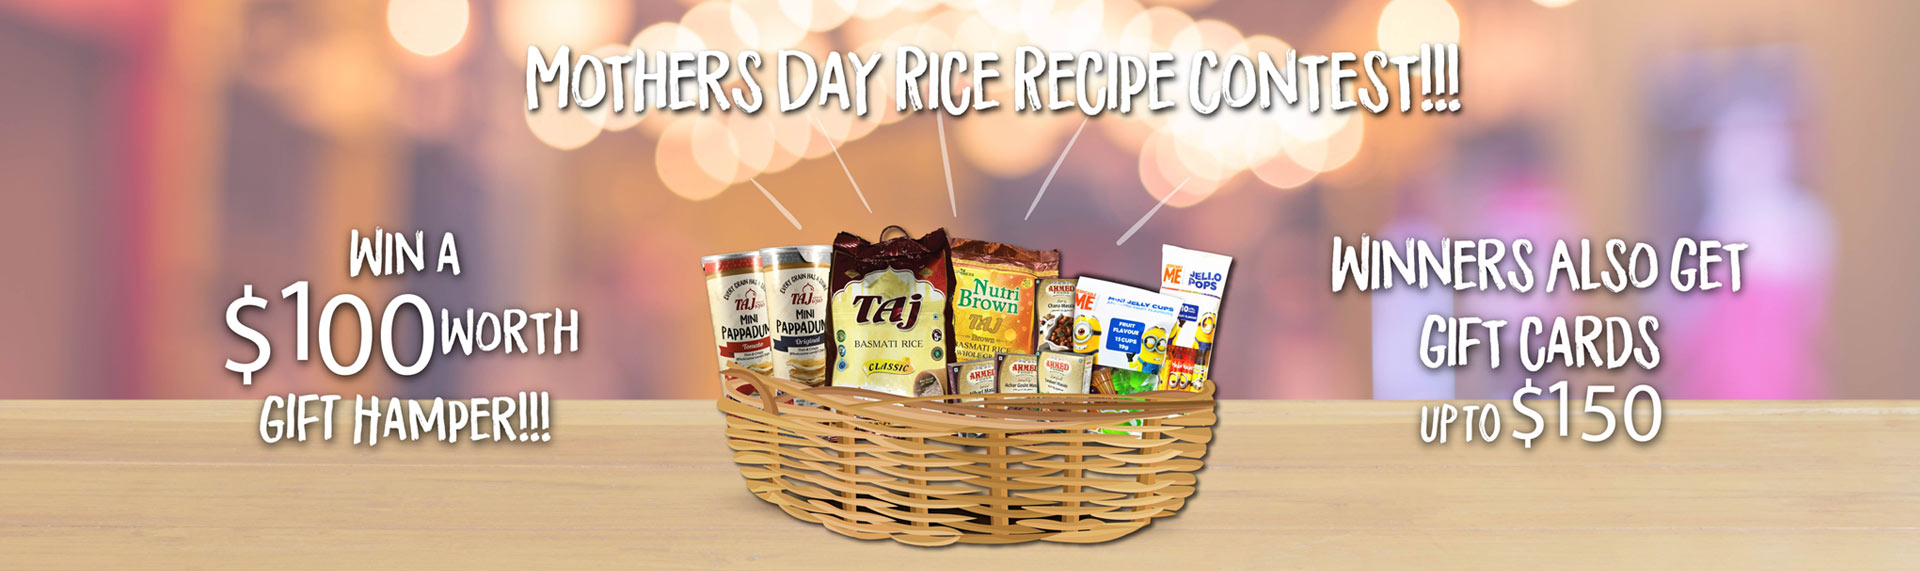 Mother Day Recipe Contest